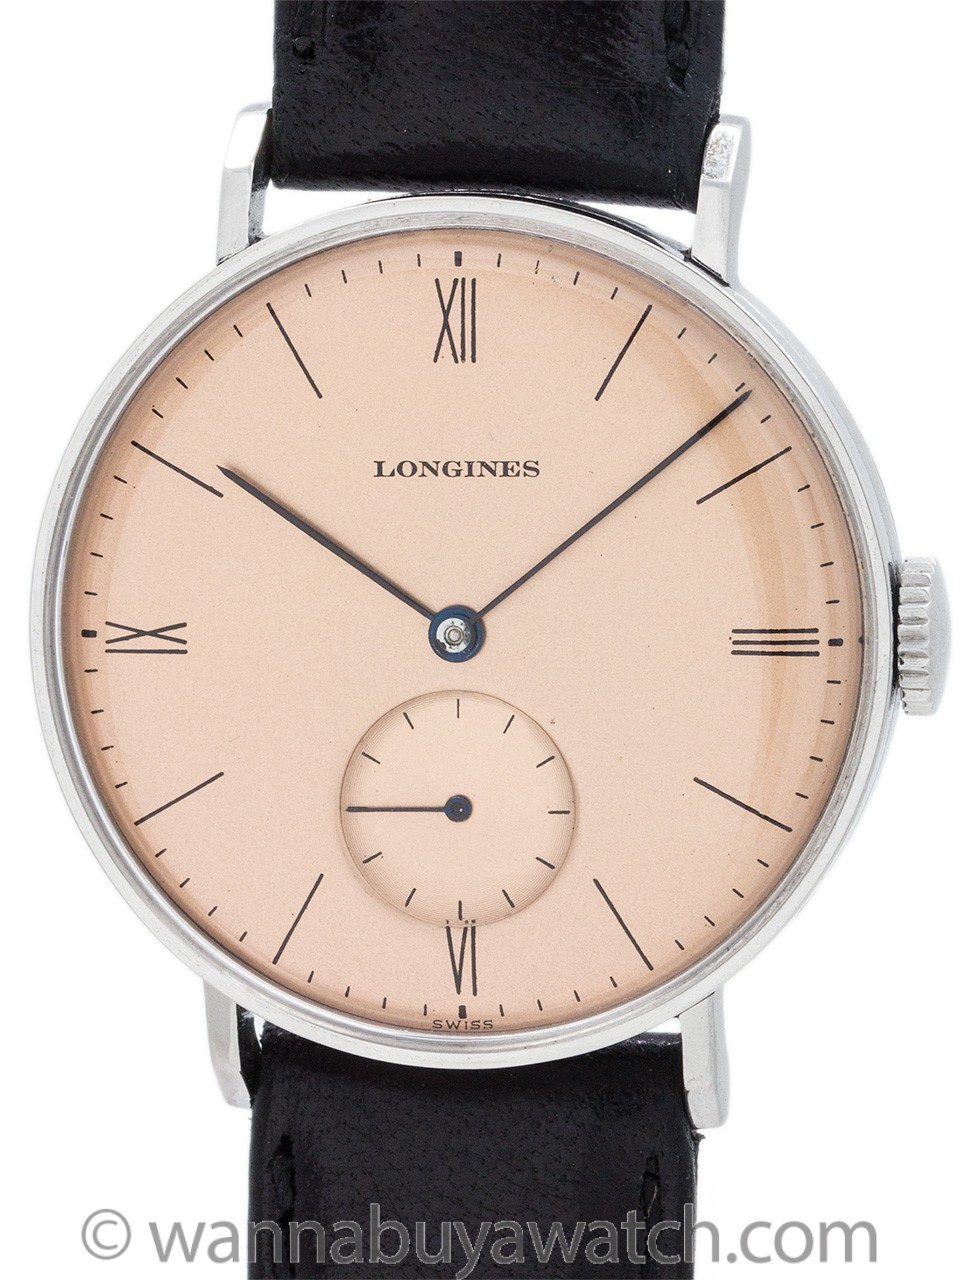 Longines Dress Model Stainless Steel circa 1942